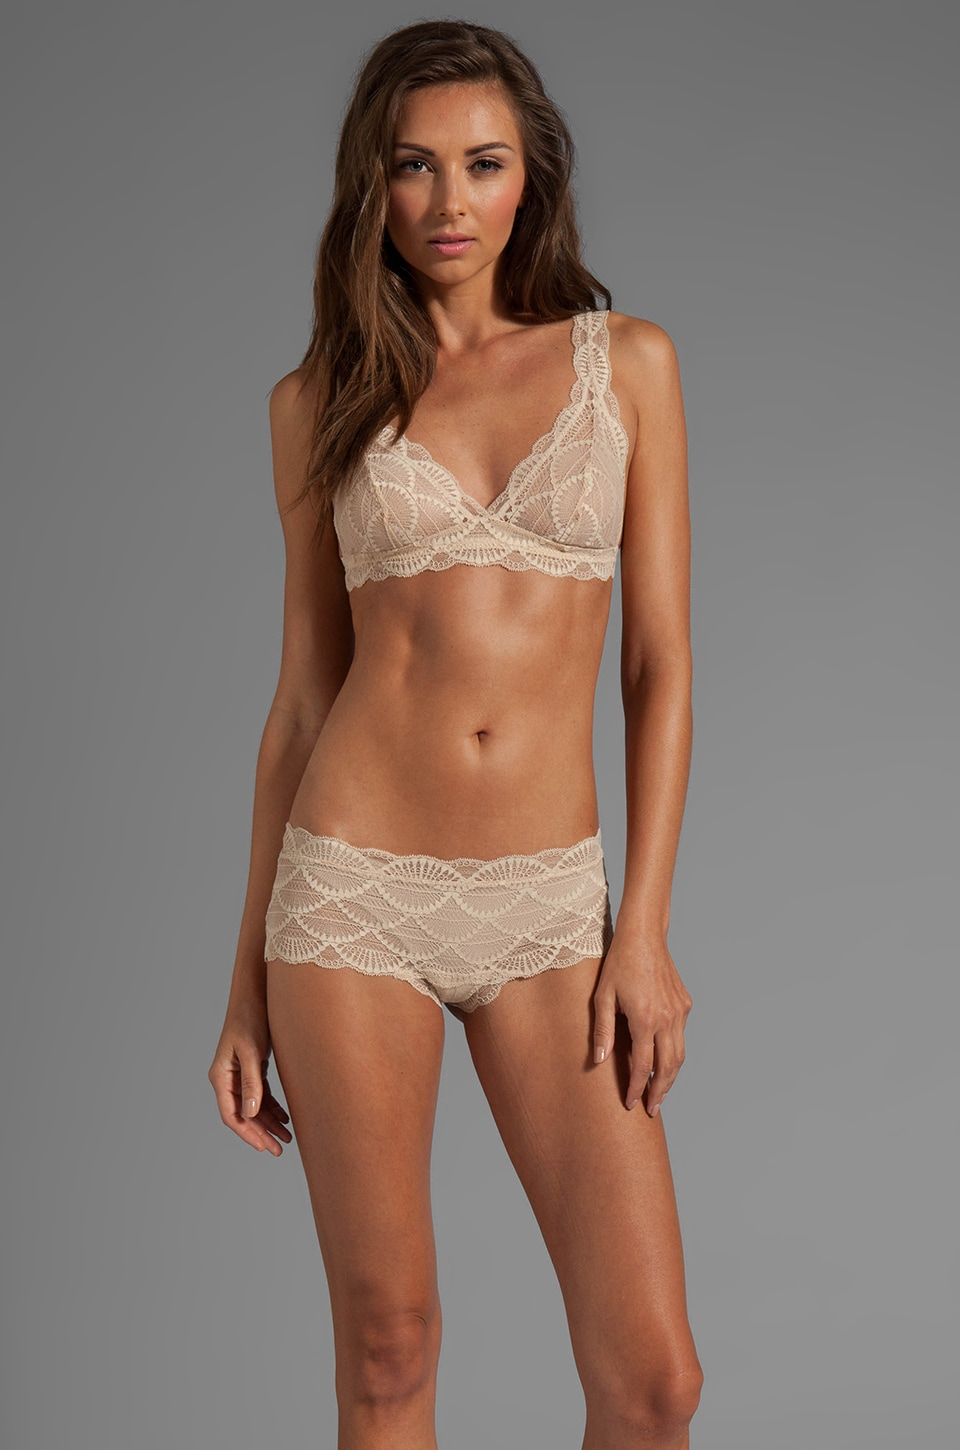 eberjey Matilda Bralet in French Vanilla